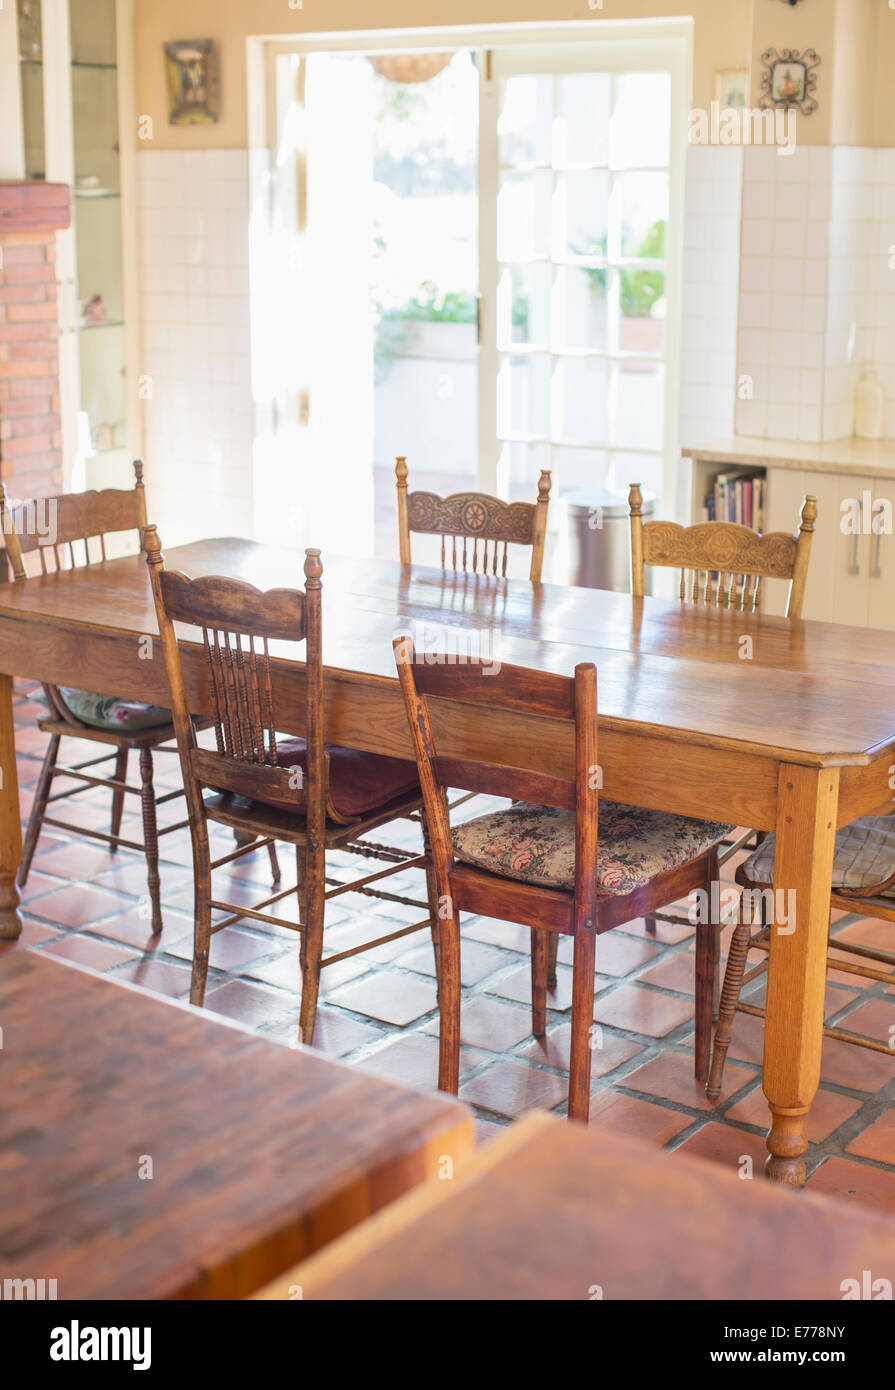 Dinning table in household kitchen - Stock Image